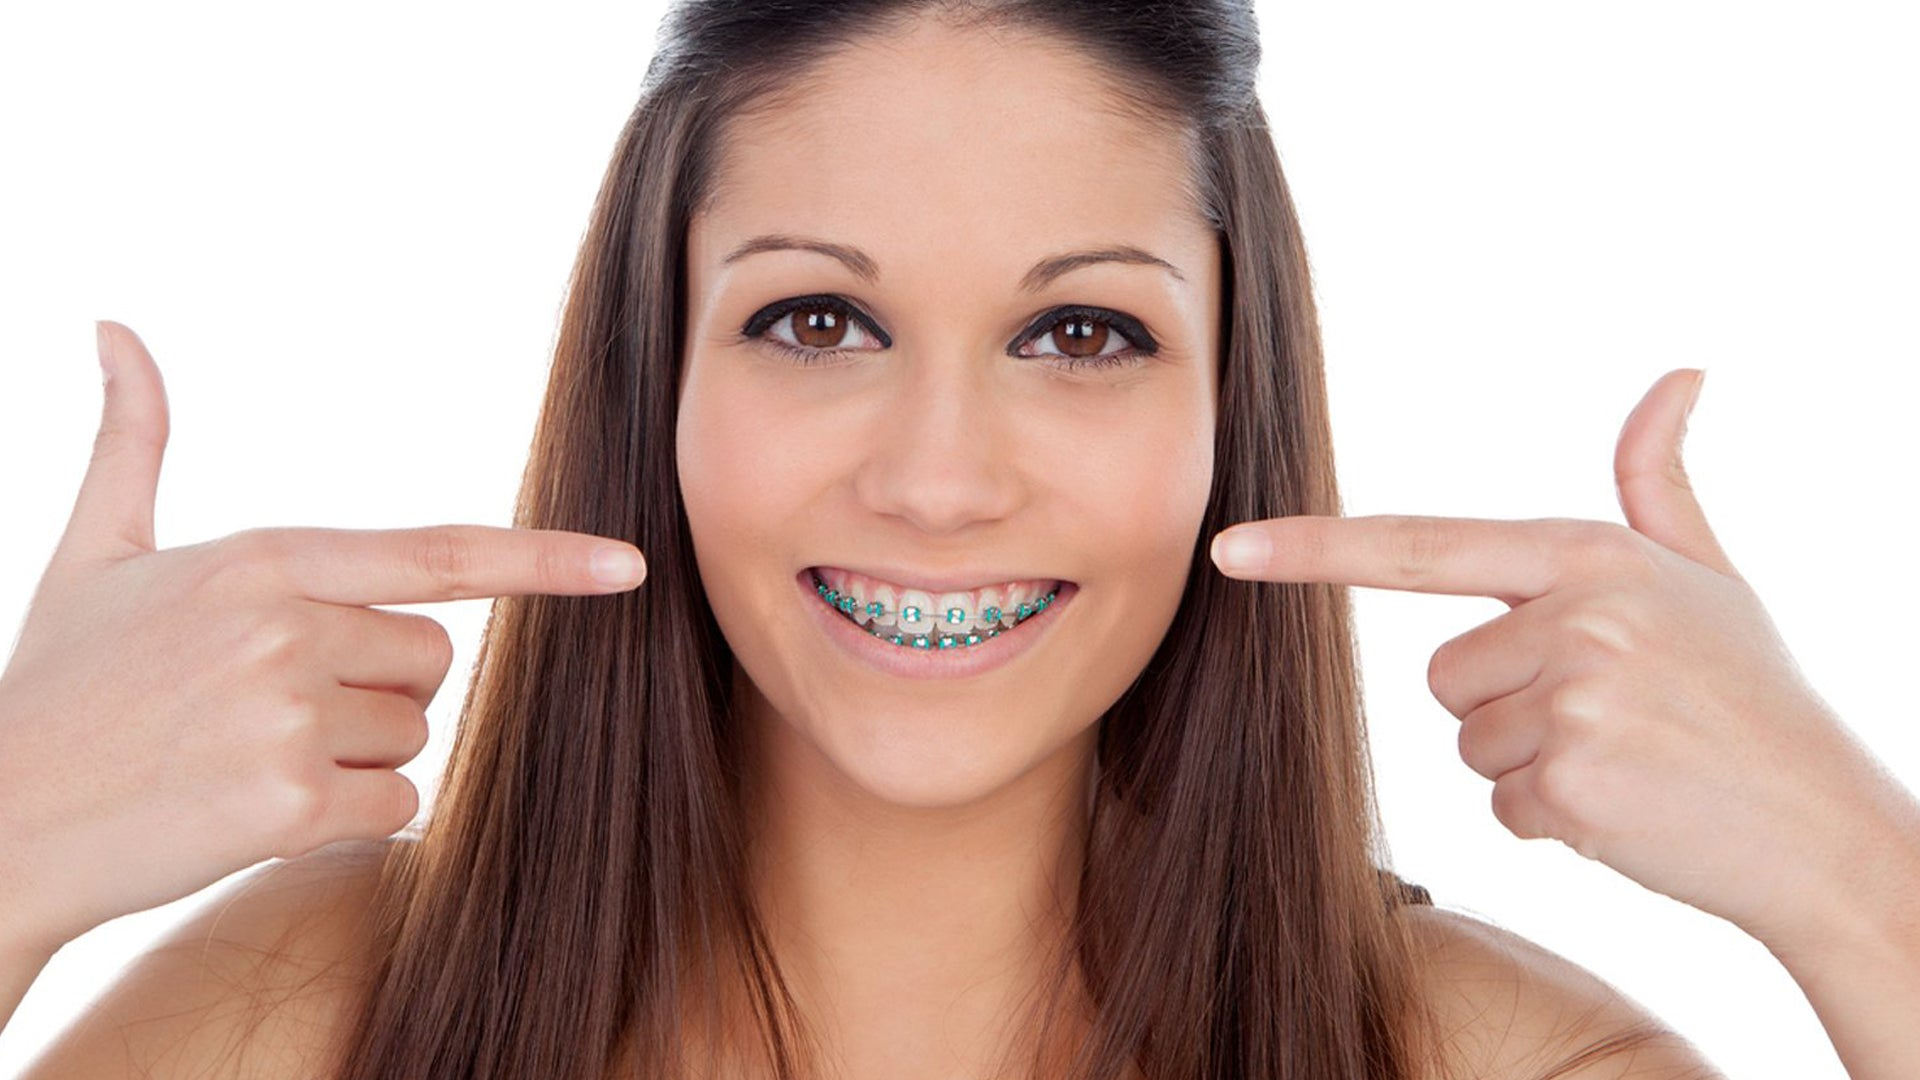 Oral health tips for patients with dental braces